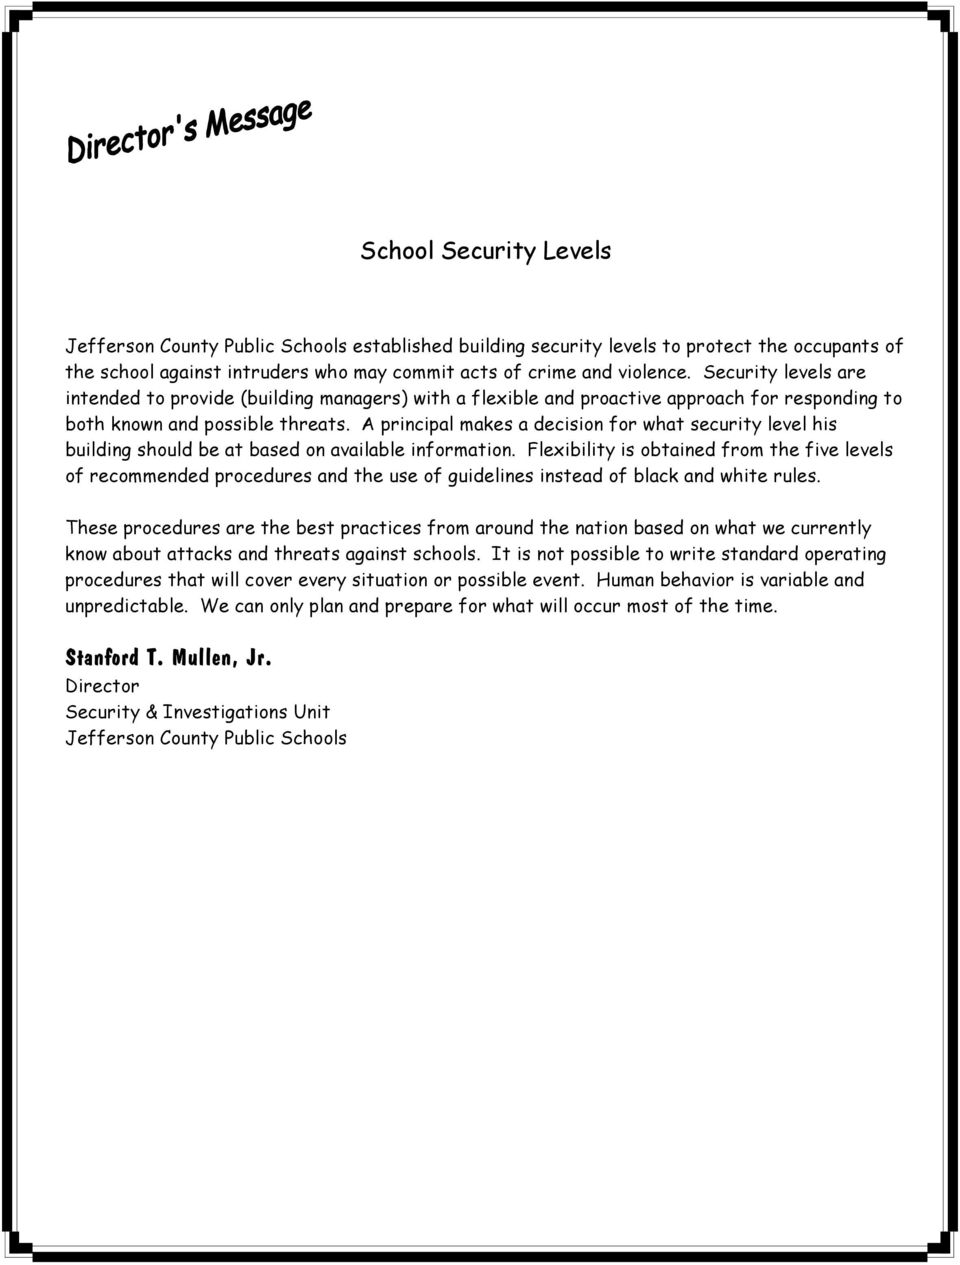 A principal makes a decision for what security level his building should be at based on available information.